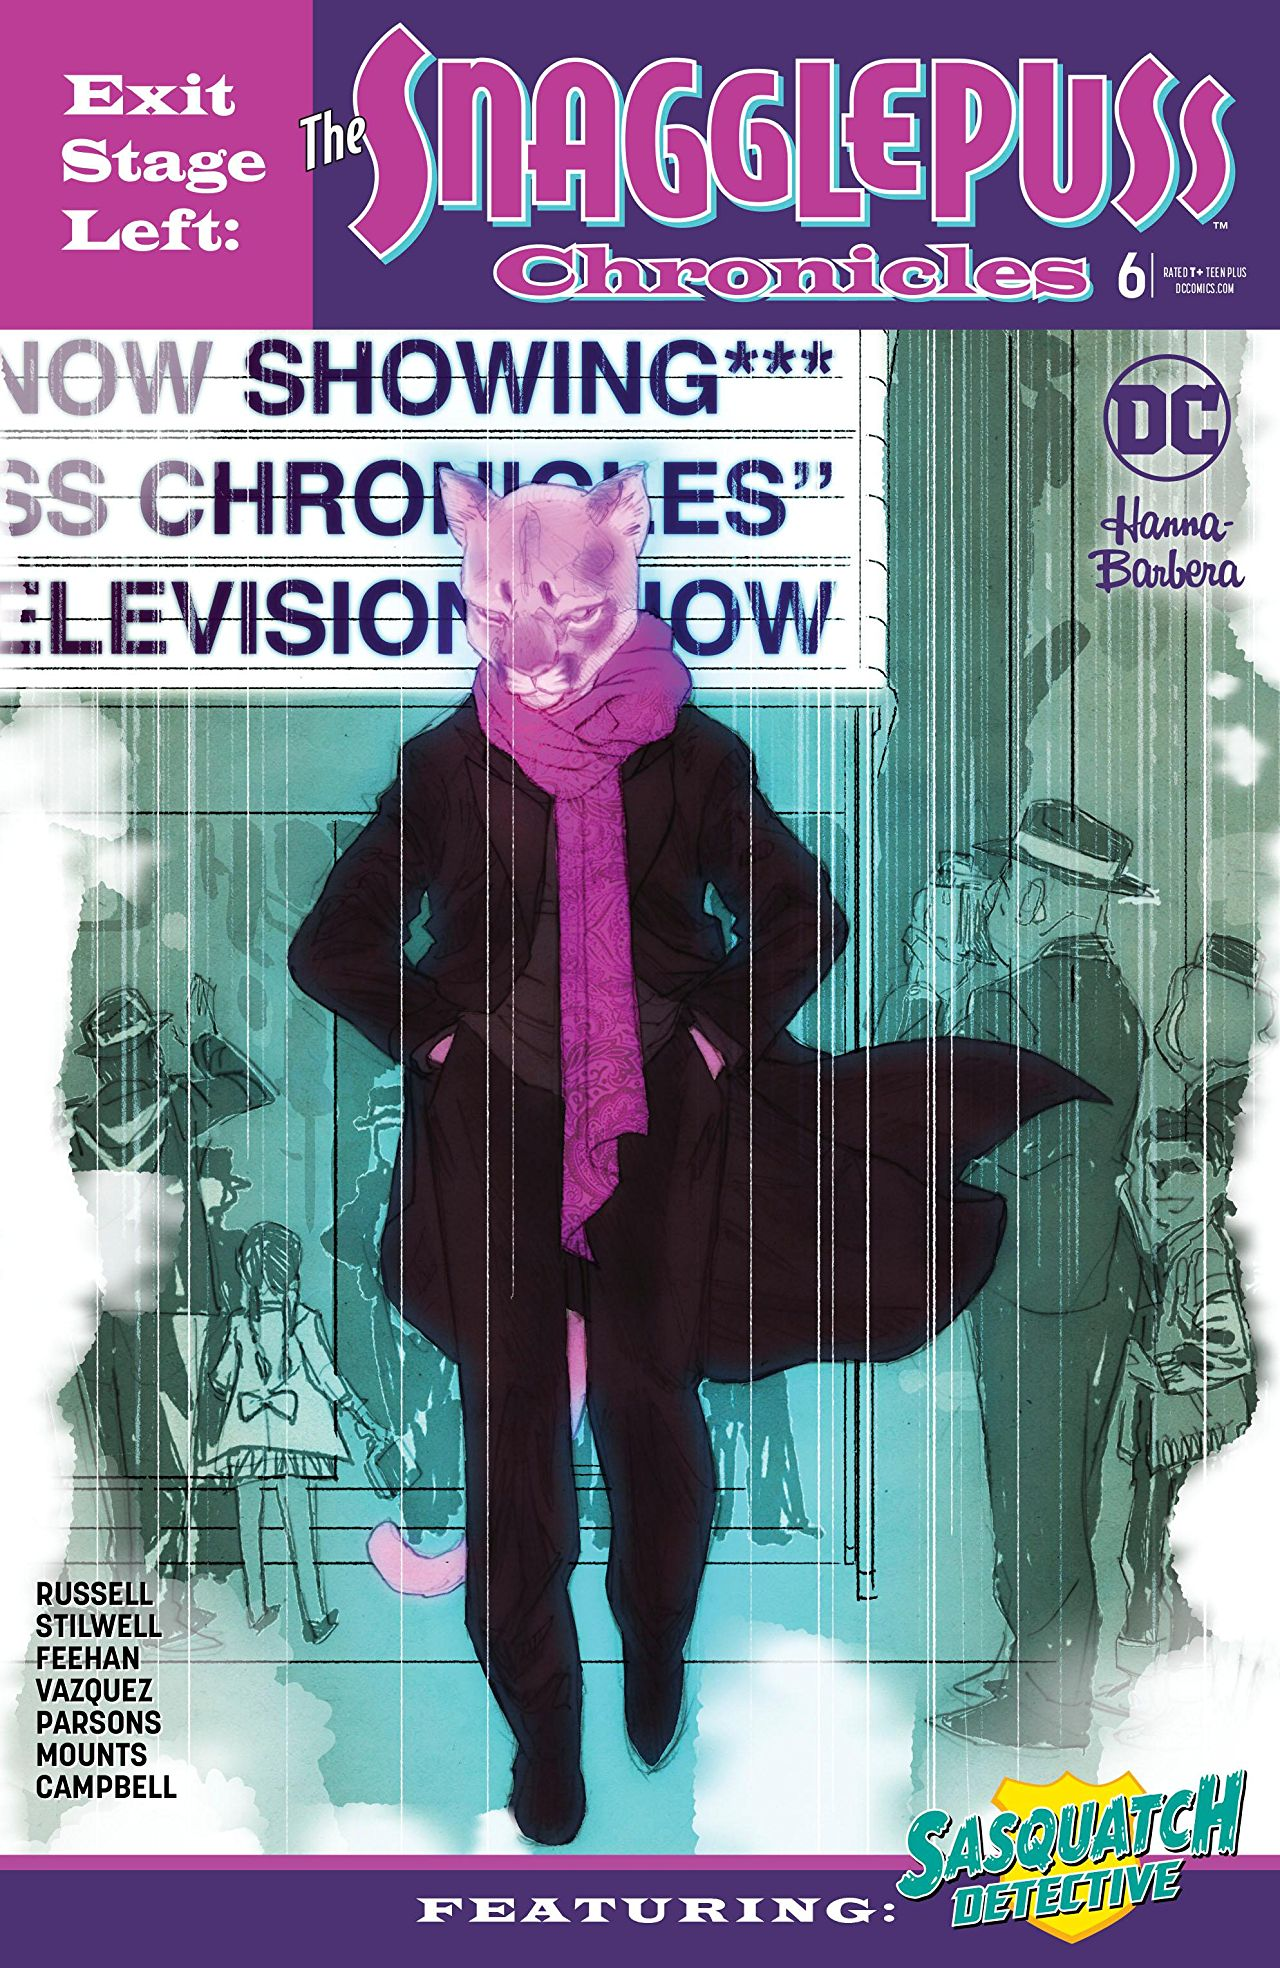 Exit Stage Left: The Snagglepuss Chronicles Vol 1 6